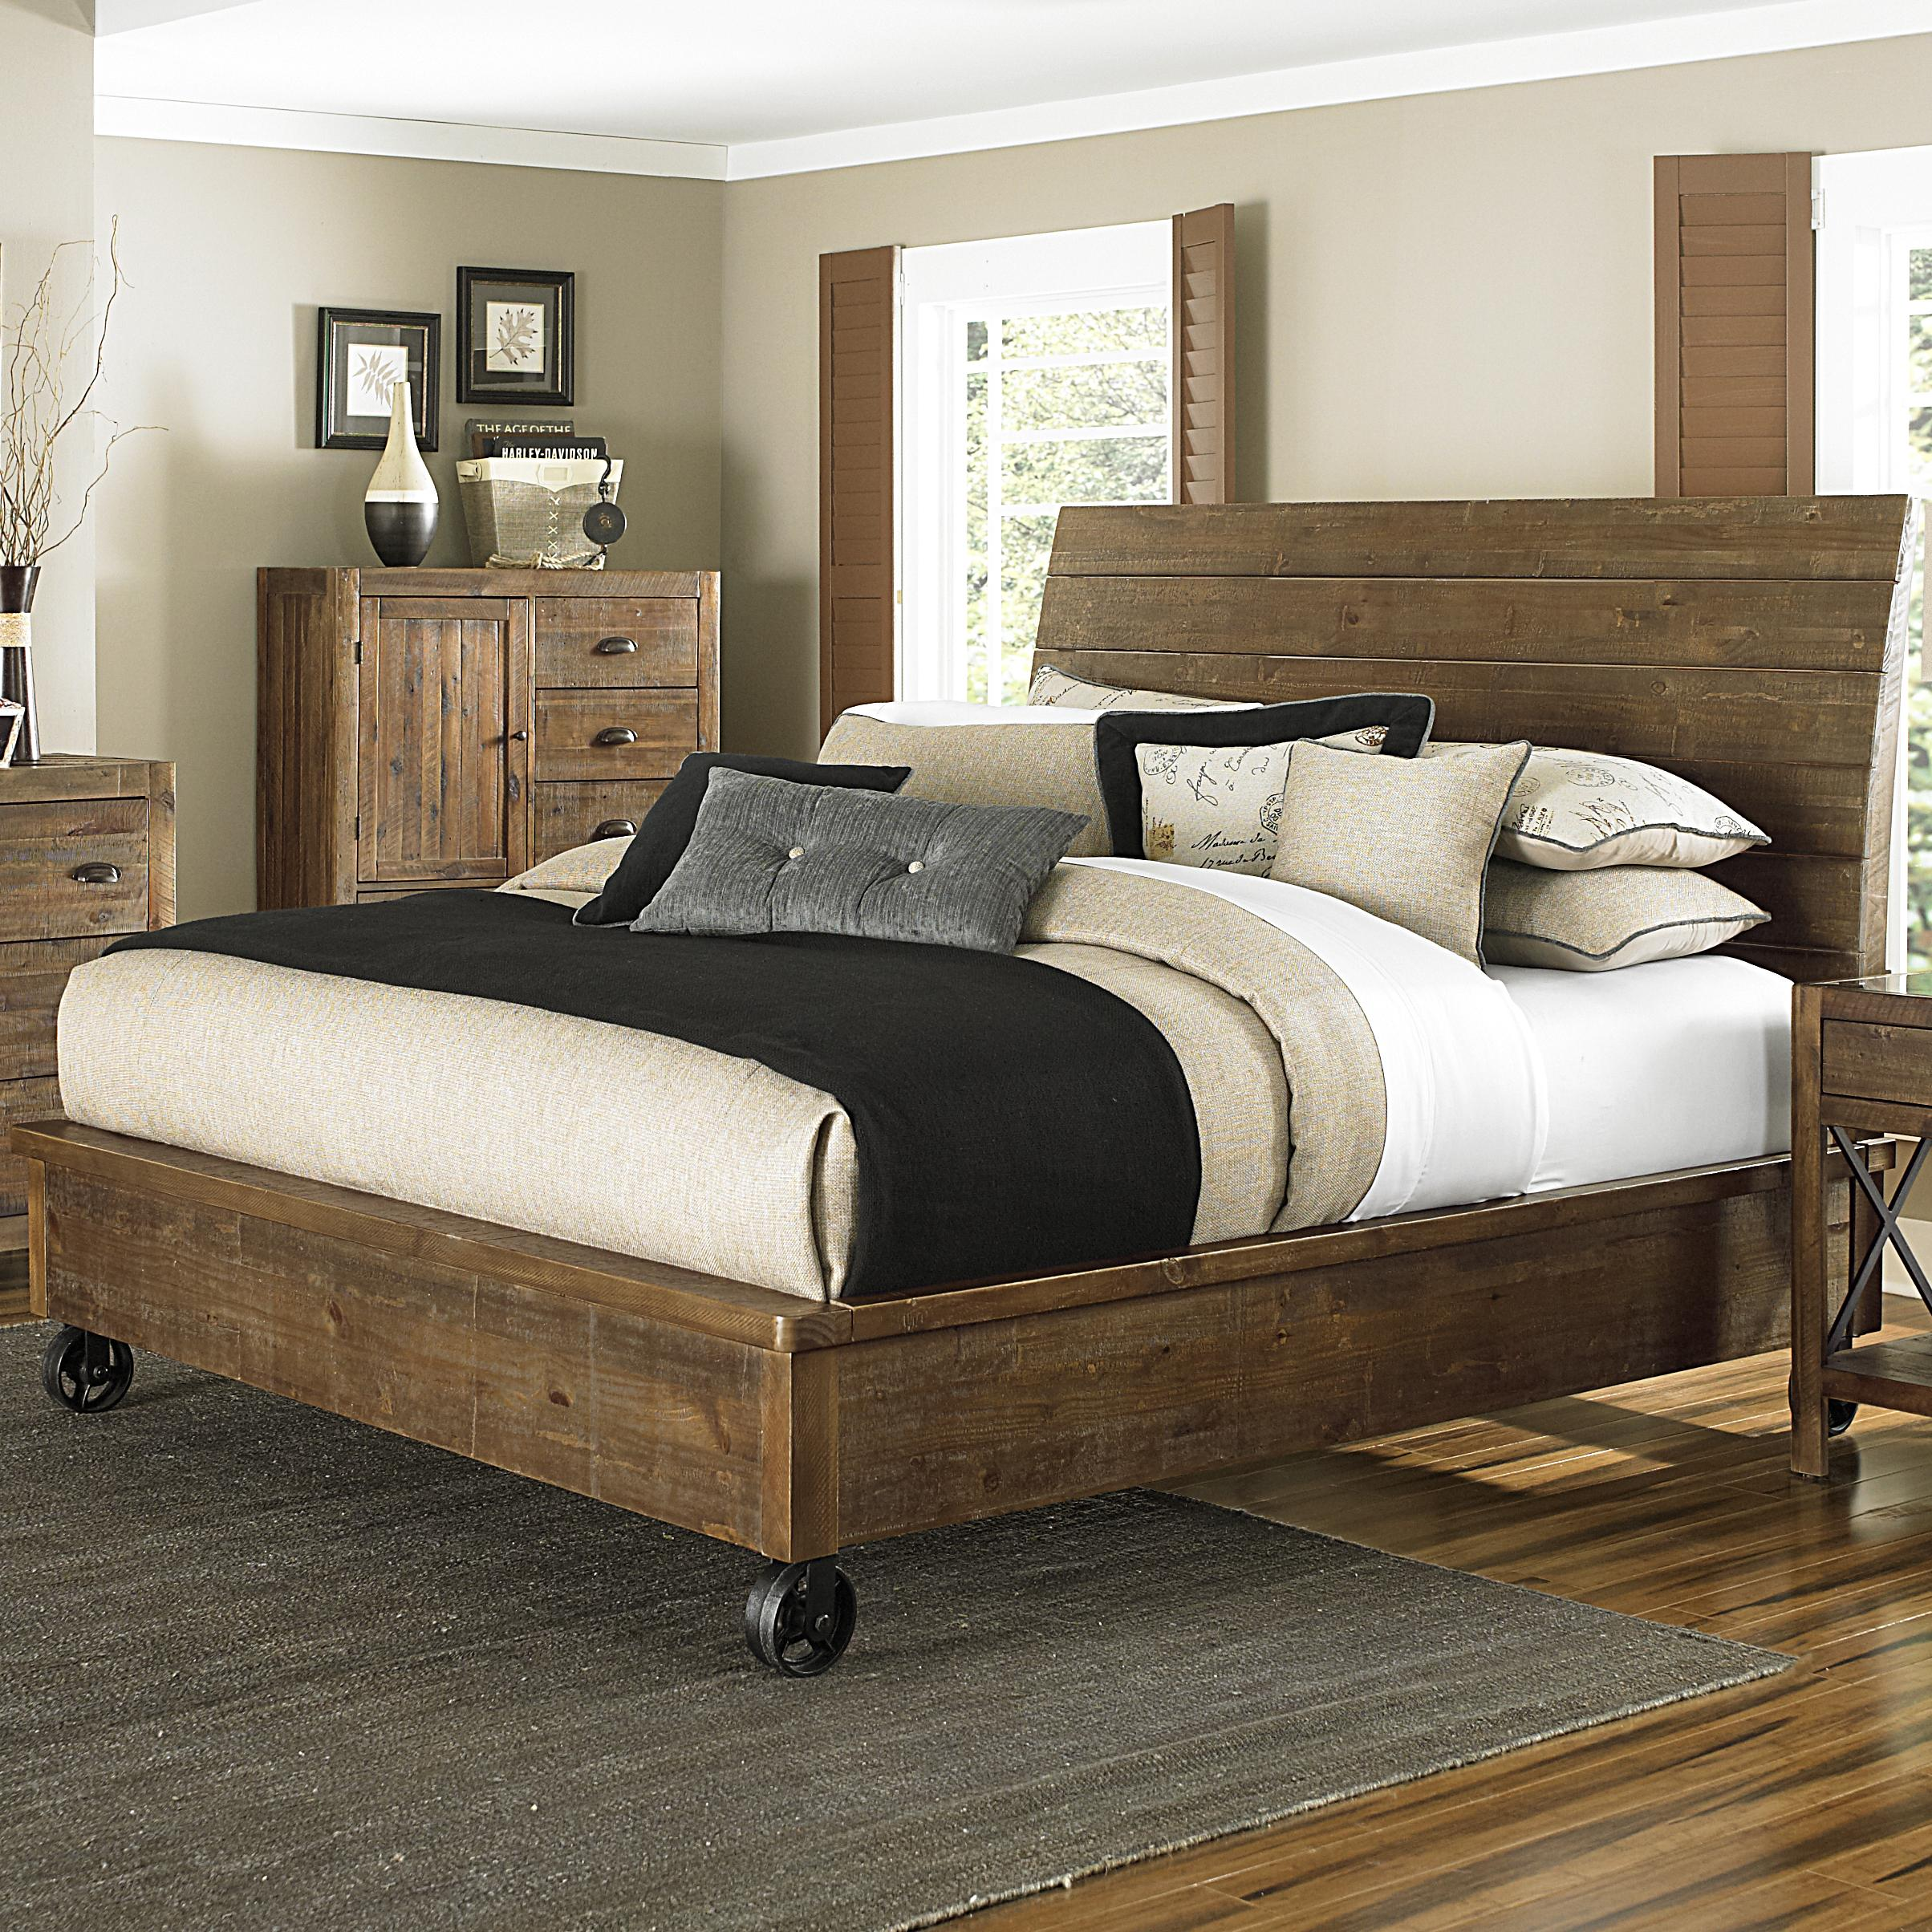 Magnussen Home  River Ridge King Panel Bed - Item Number: B2375+68H+58R+68F